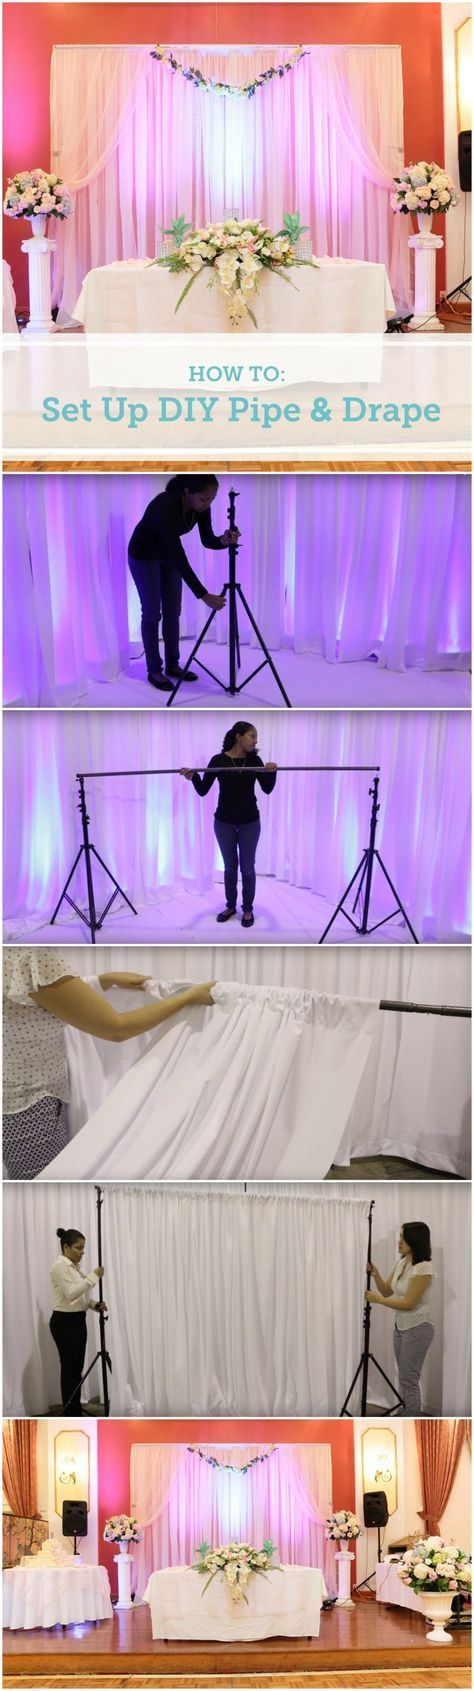 Setting up the diy pipe and drape kits from rentmywedding wedding setting up the diy pipe and drape kits from rentmywedding wedding decoration pinterest diy pipe decoration and weddings junglespirit Gallery